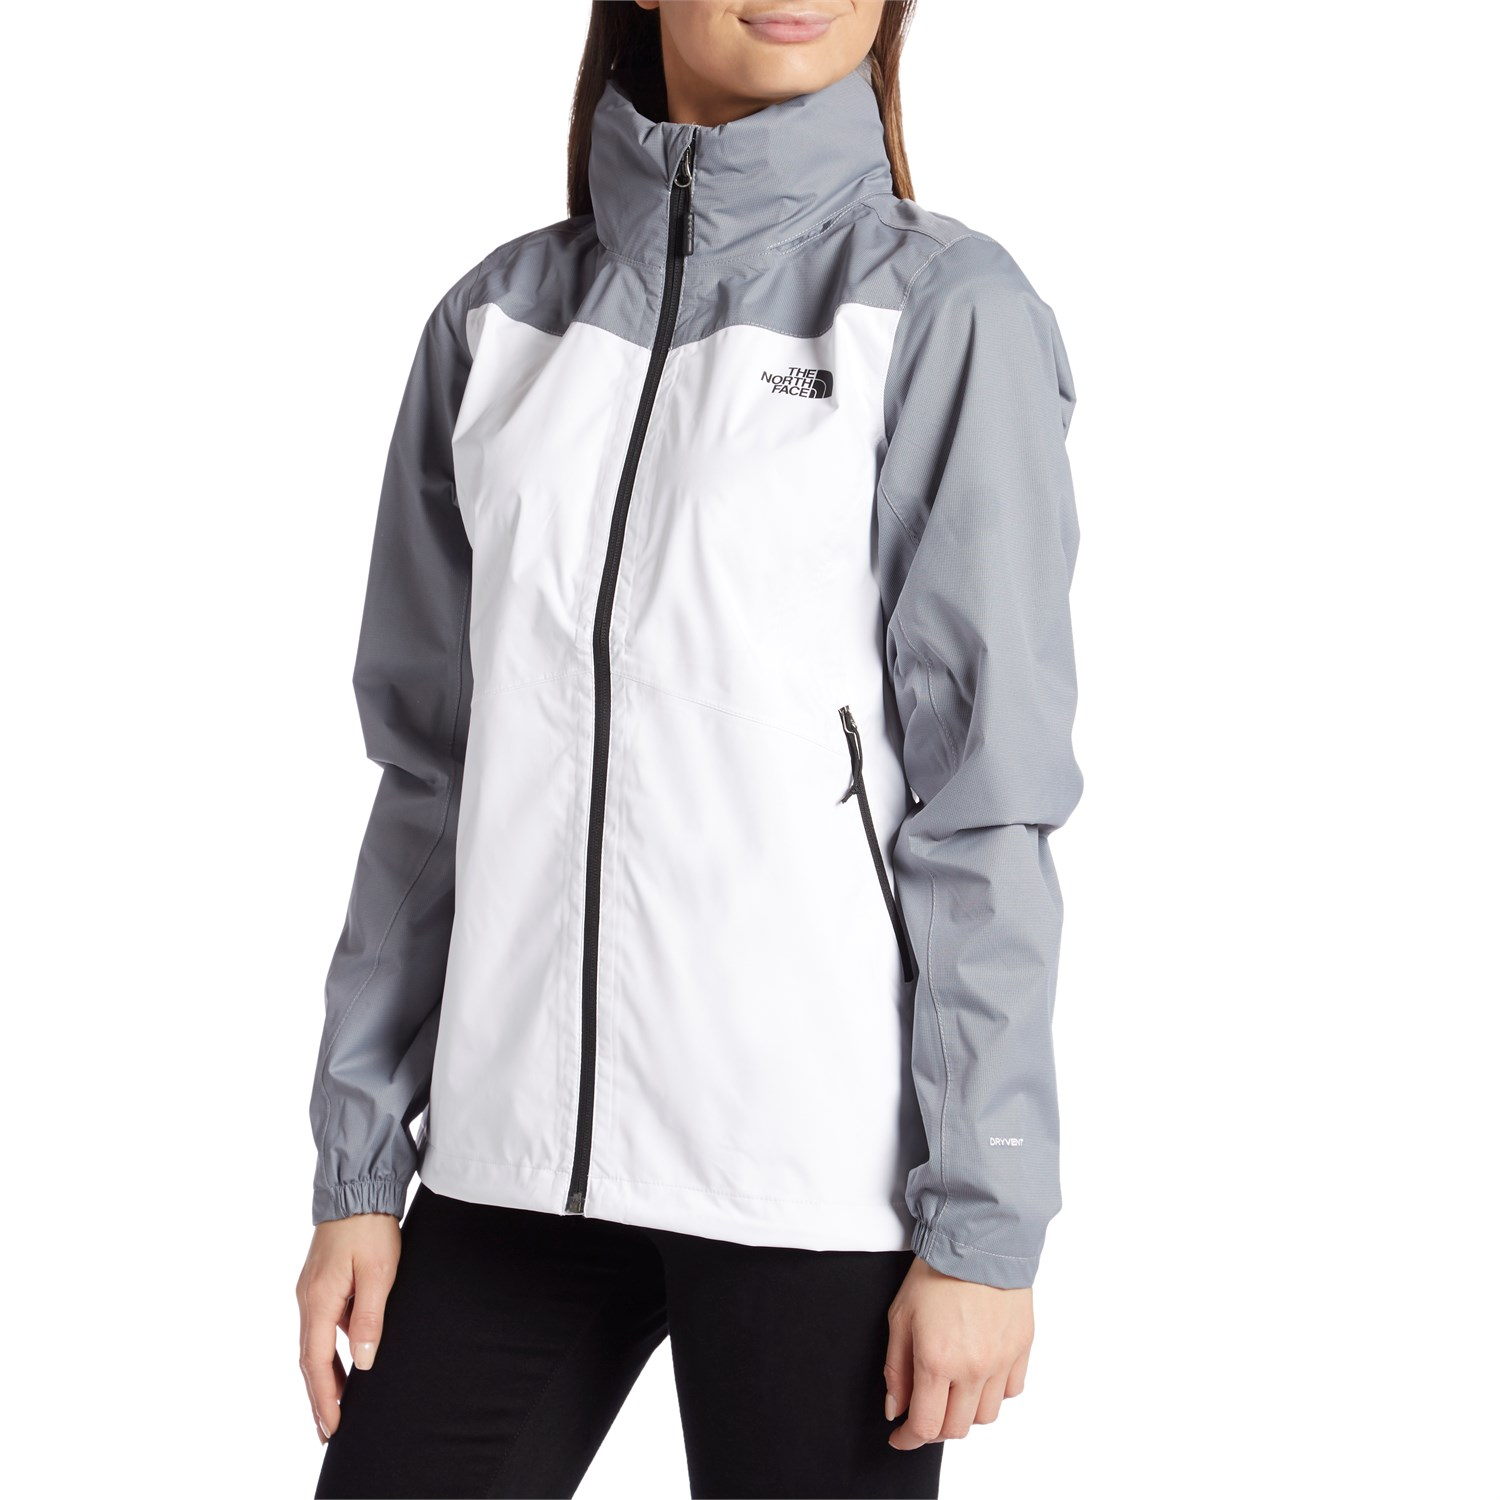 a49429485697 The North Face Resolve Plus Jacket - Women s